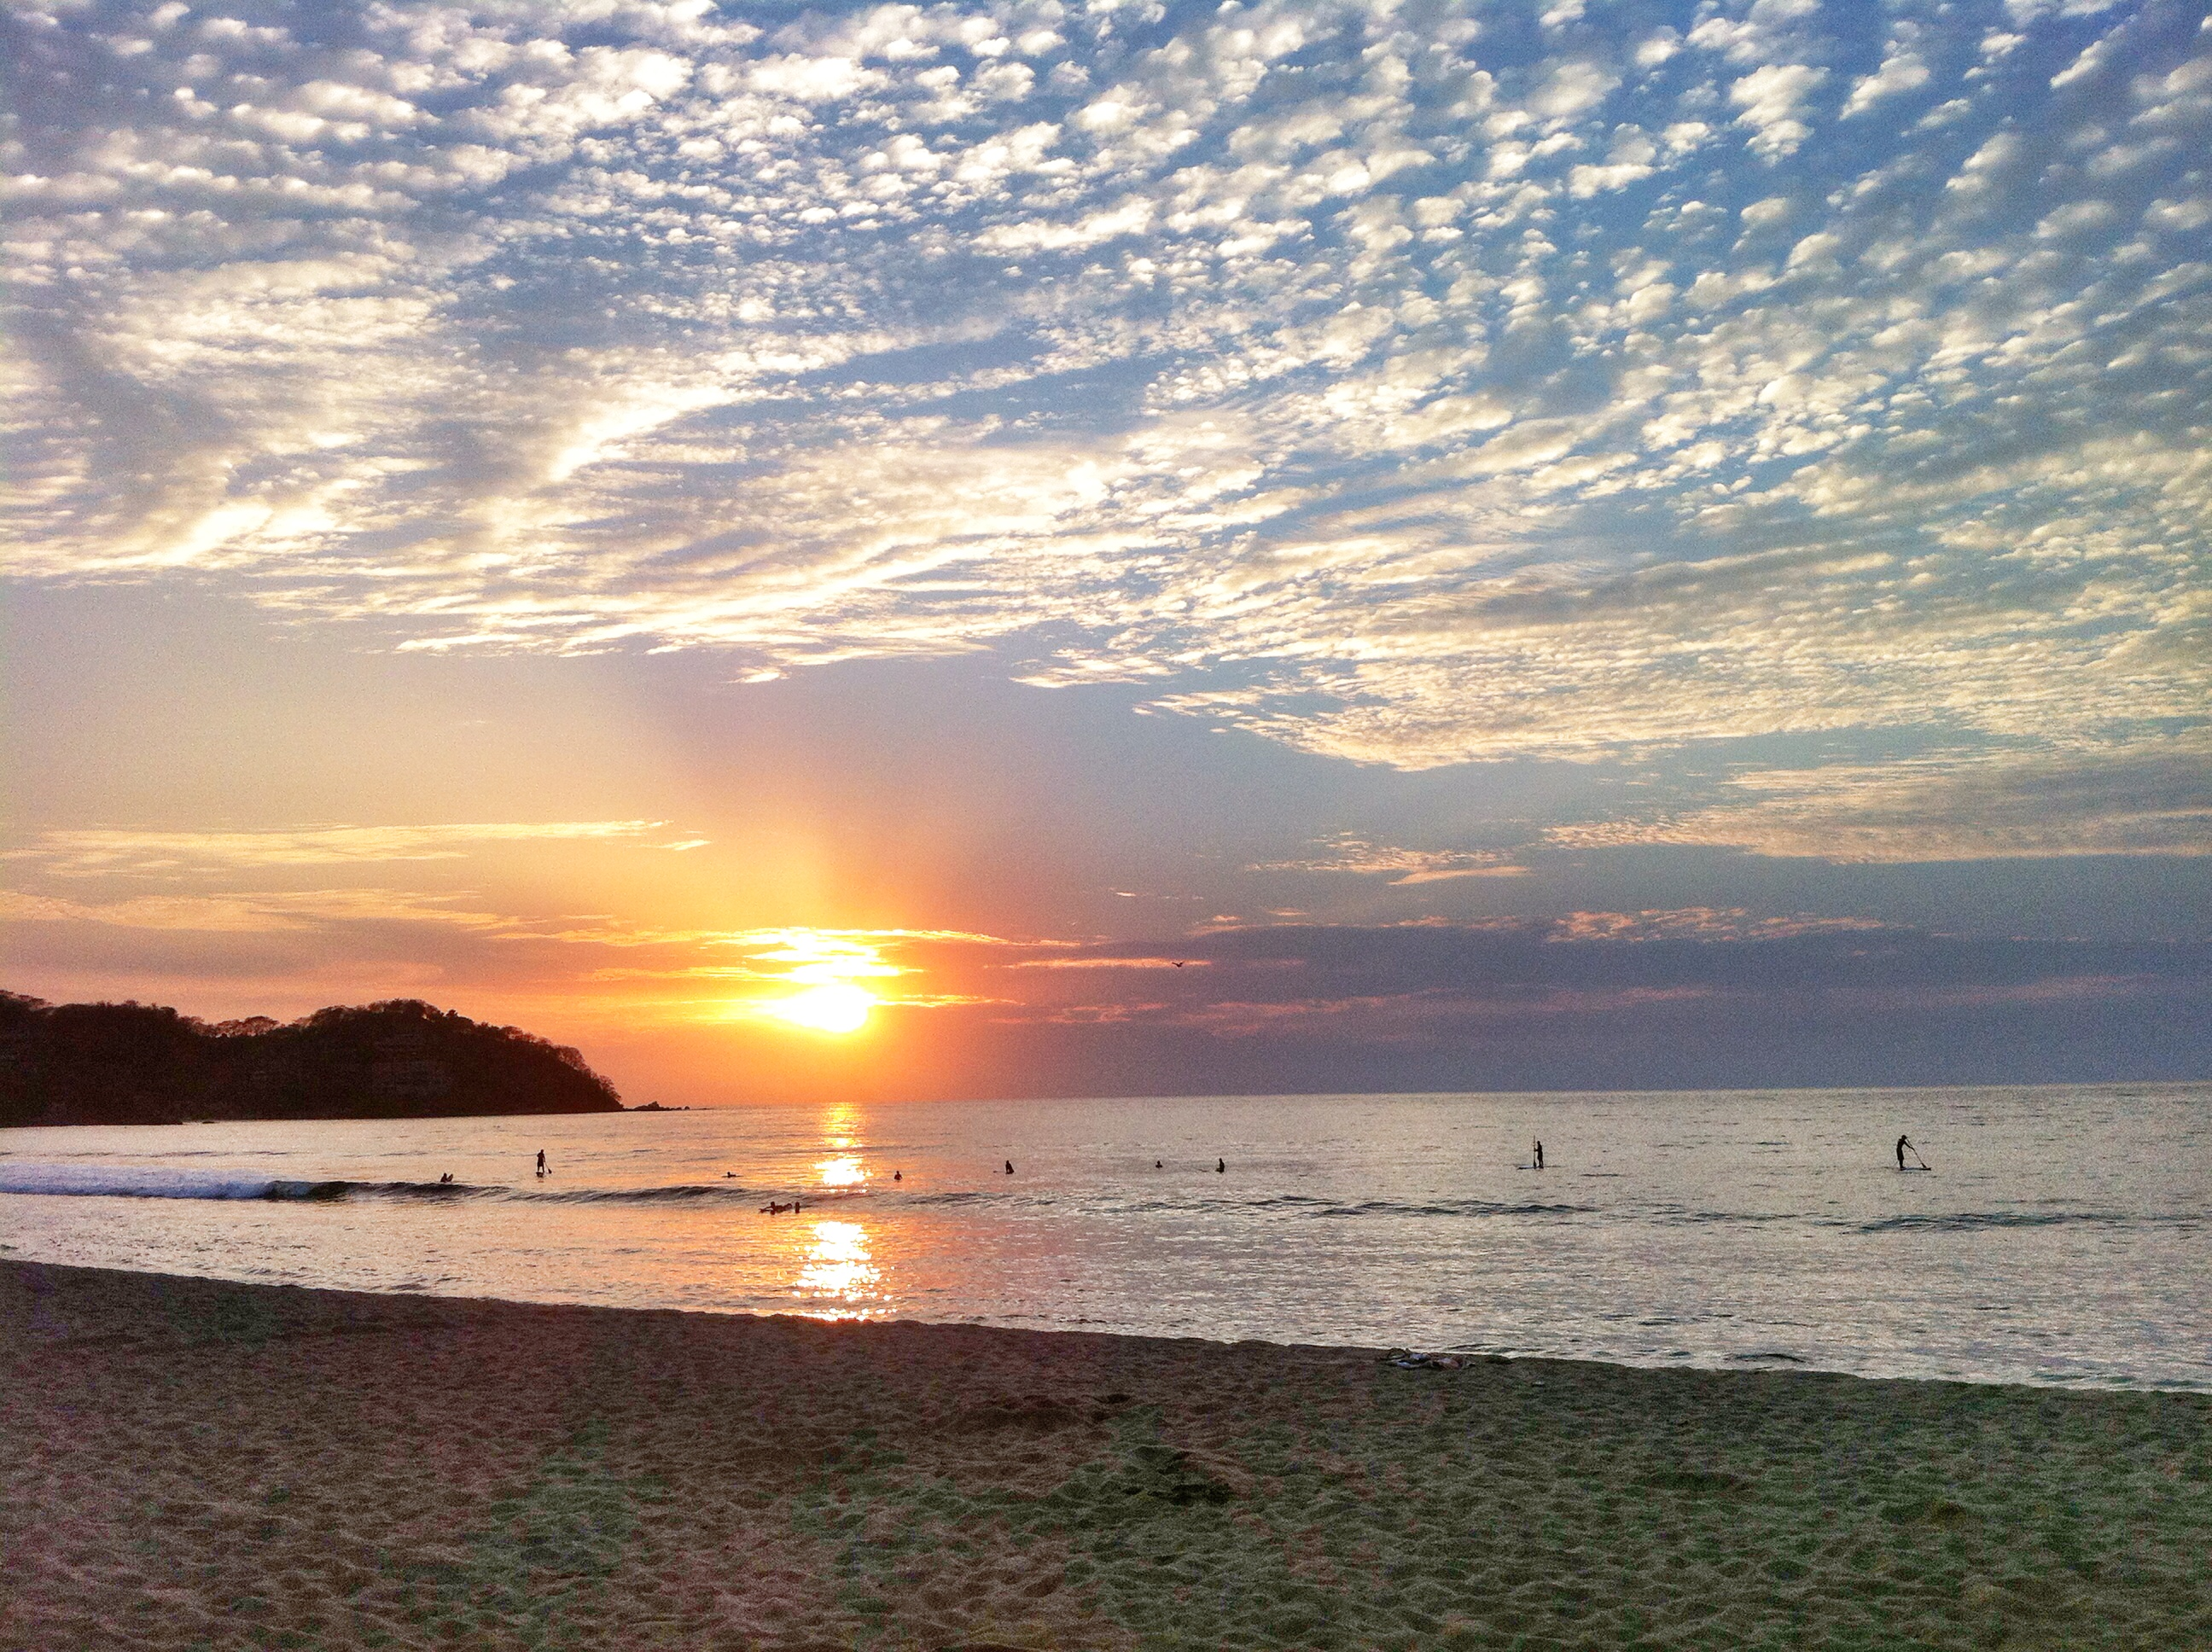 sunset-sayulita-mexico